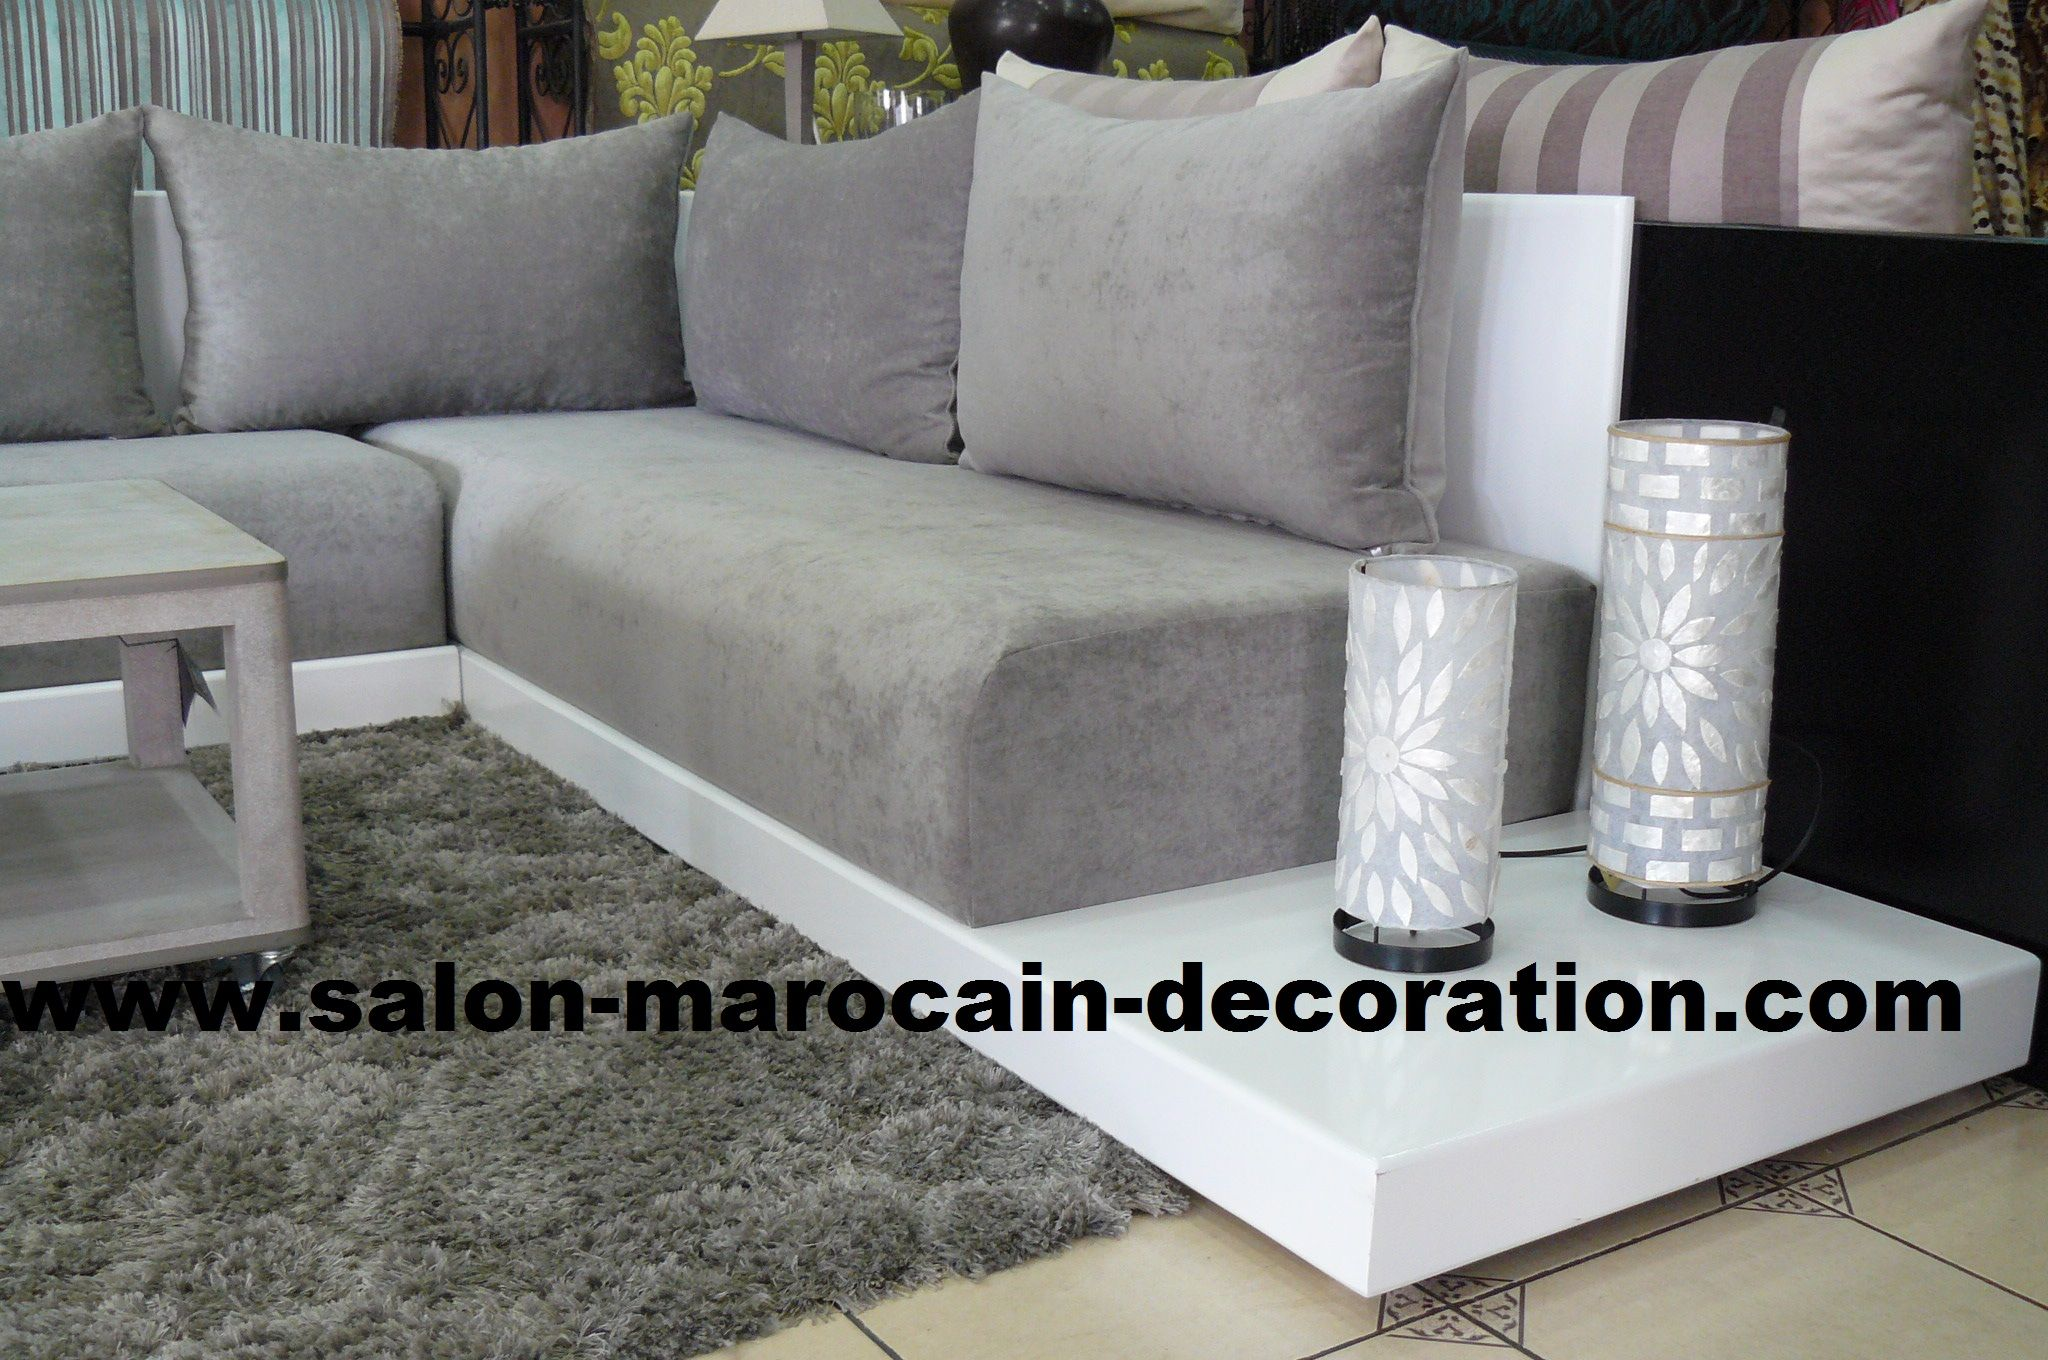 1000 ideas about sedari marocain on pinterest decoration interieur moderne modern sofa and moroccan living rooms - Sedari Moderne En Bois